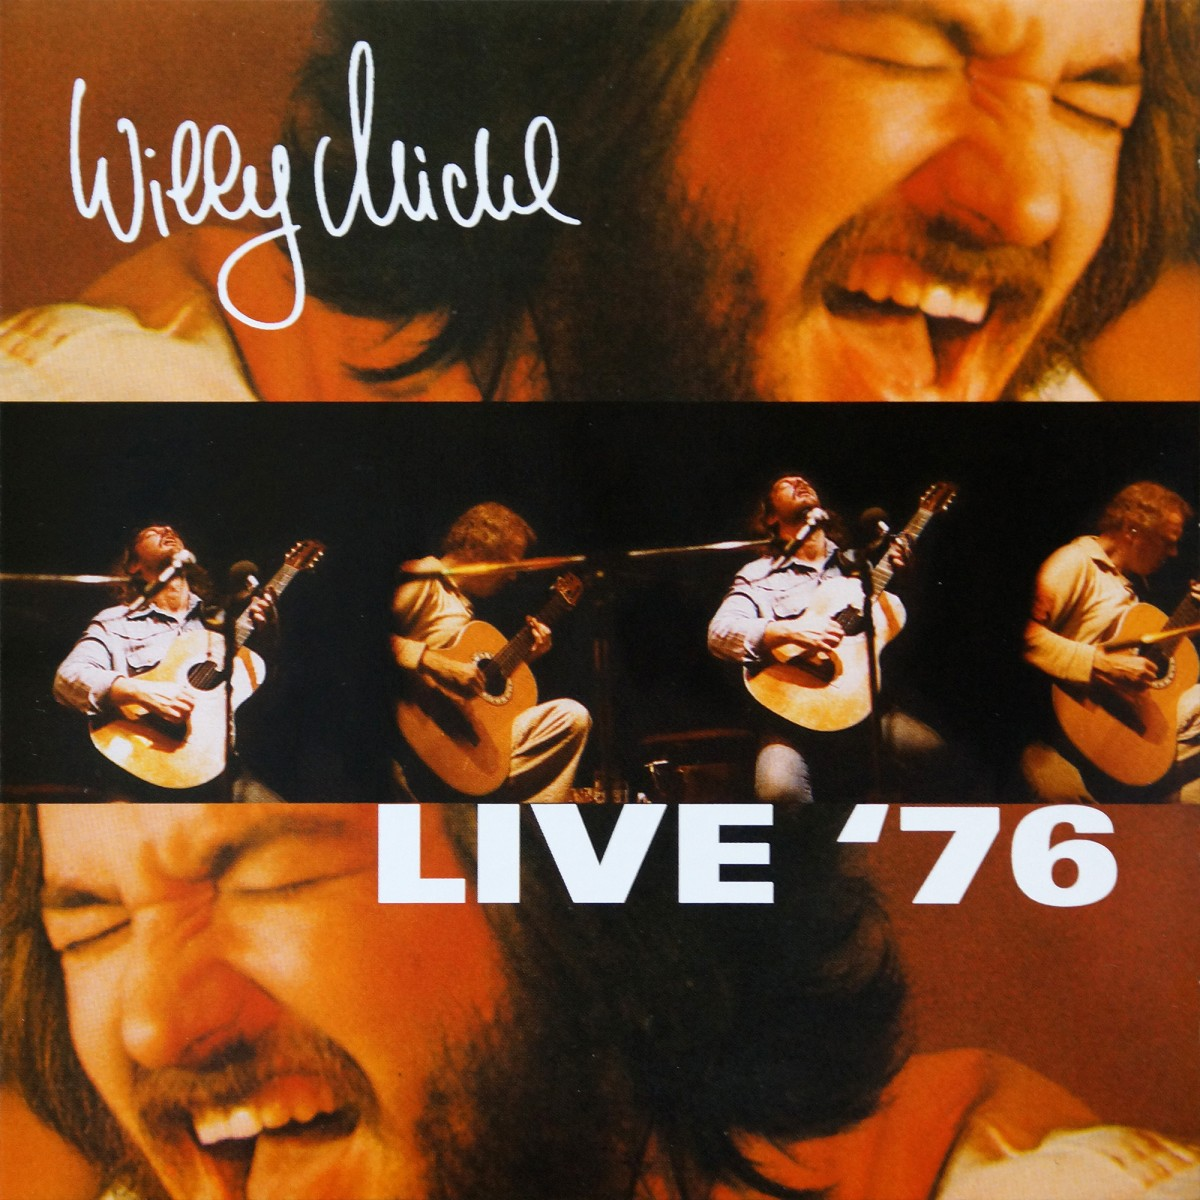 Michl, Willy: Live '76 (1976)